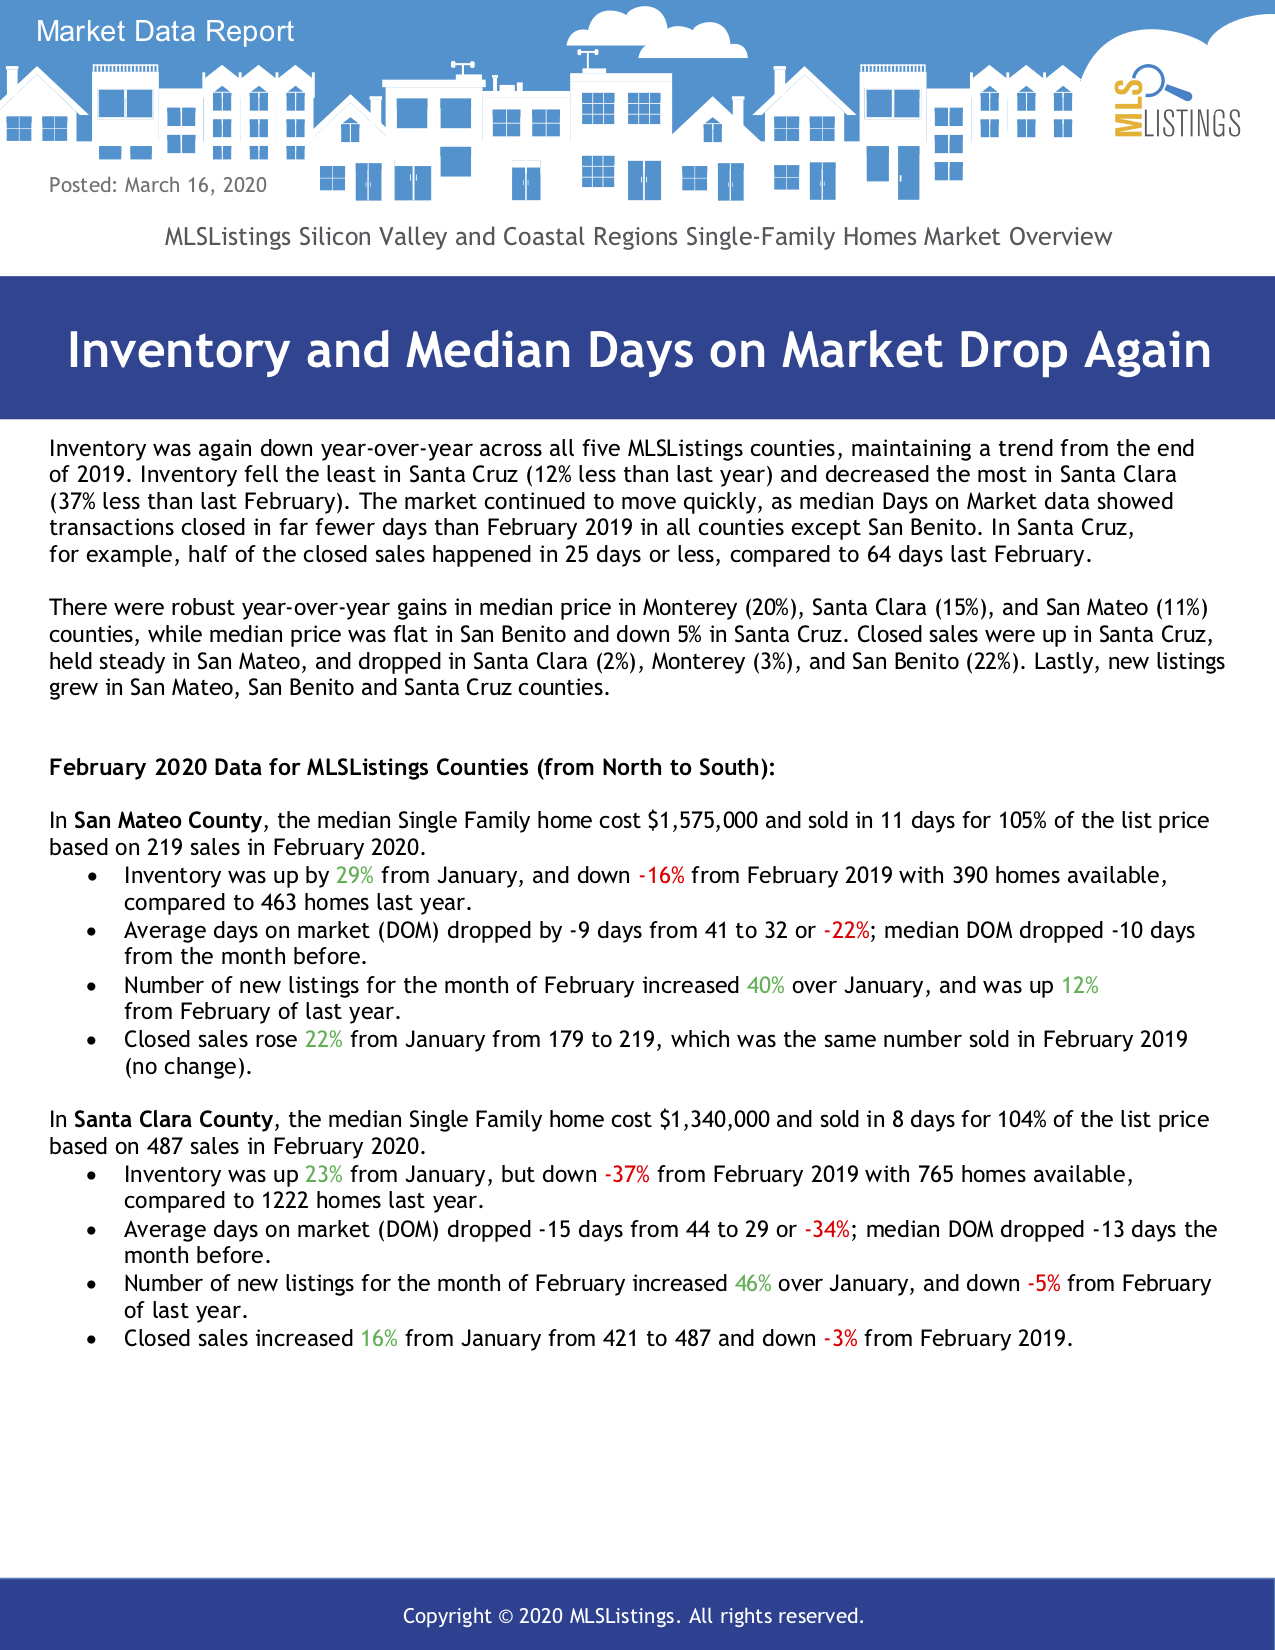 Inventory and Median Days on the Market February 2020